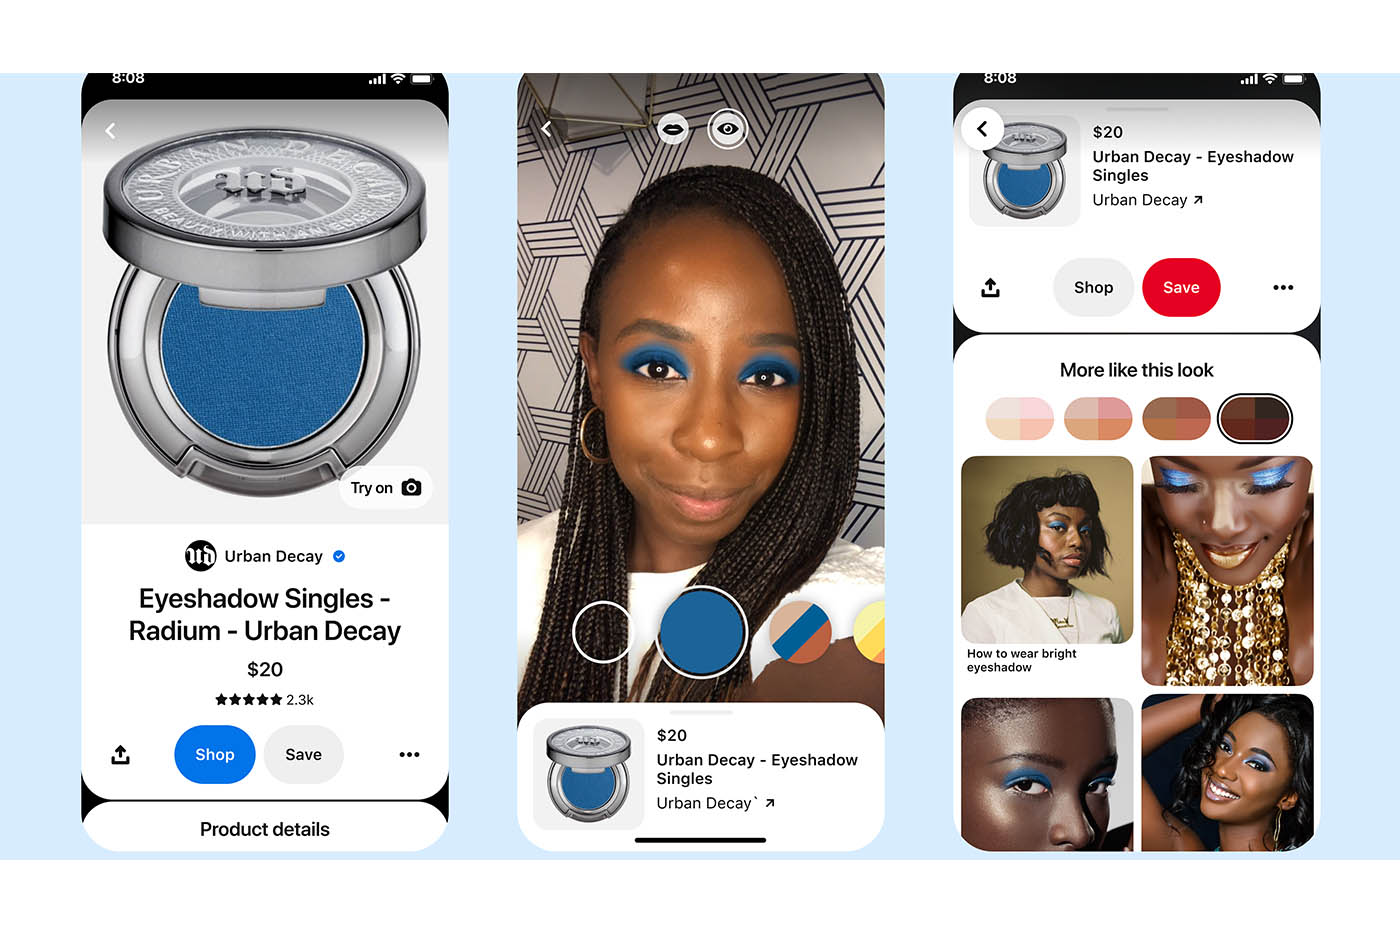 Pinterest offers virtual eyeshadow  try-on experience